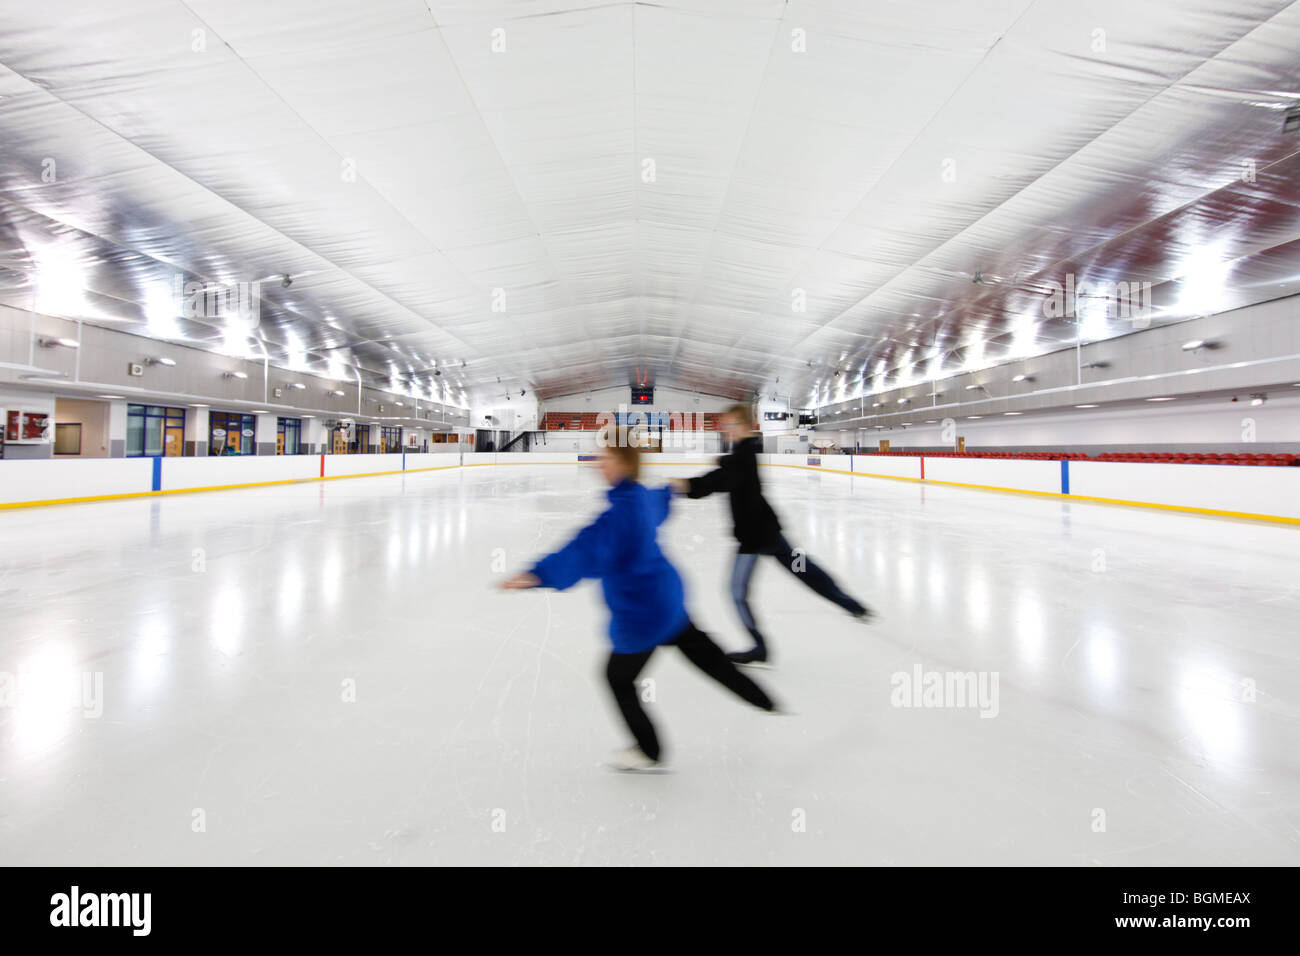 Roller skating rink jakarta - Blue Ice Solihull Ice Rink Solihull Stock Image